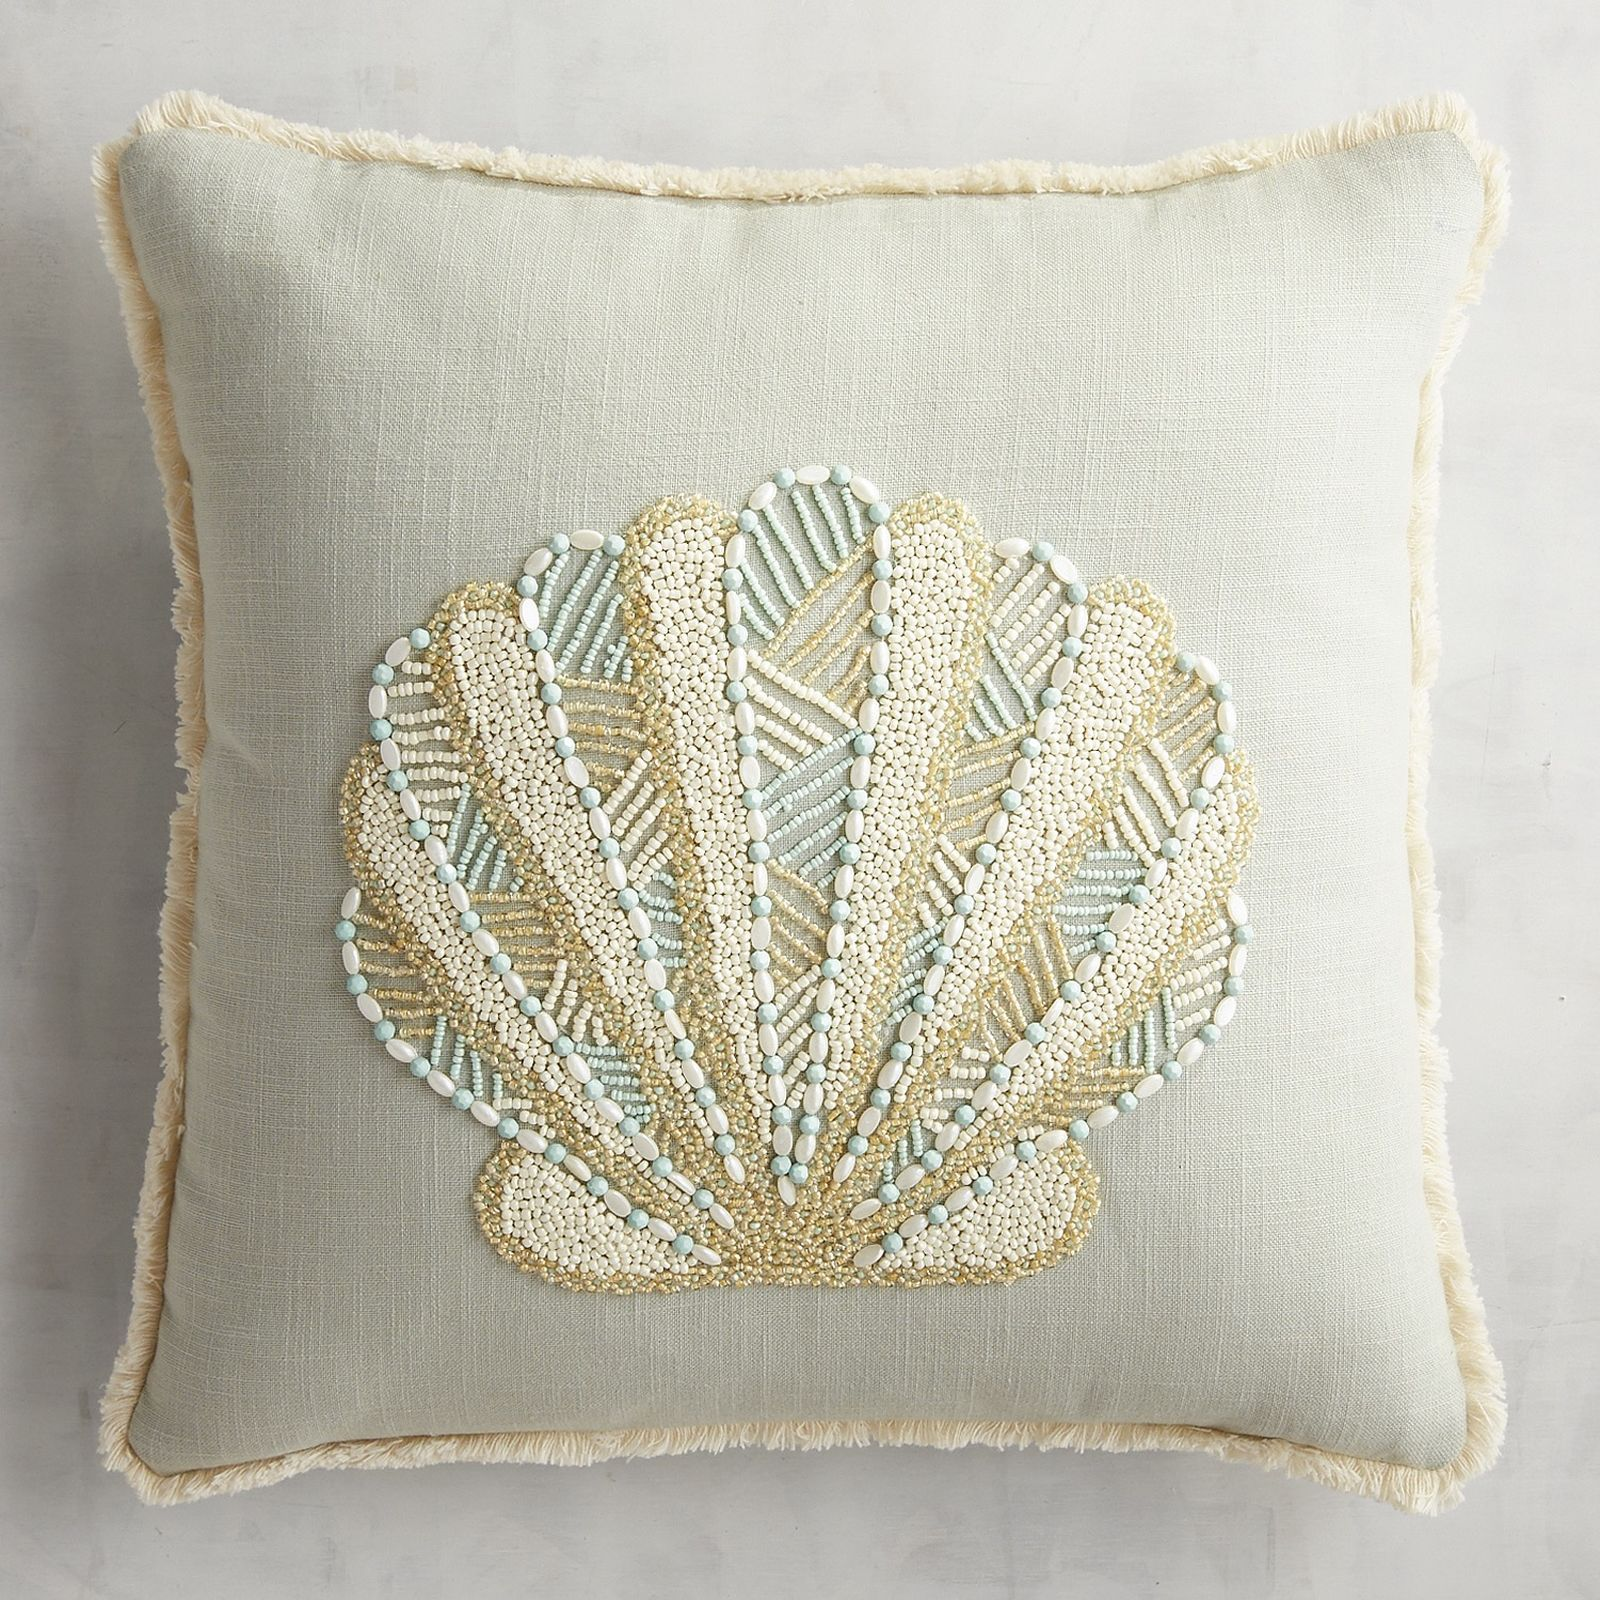 Seeking safe harbor on your sofa, our fan shell fashioned of sparkly beadwork in a calming sea-and-sand color palette rides the wave of sophisticated coastal chic.